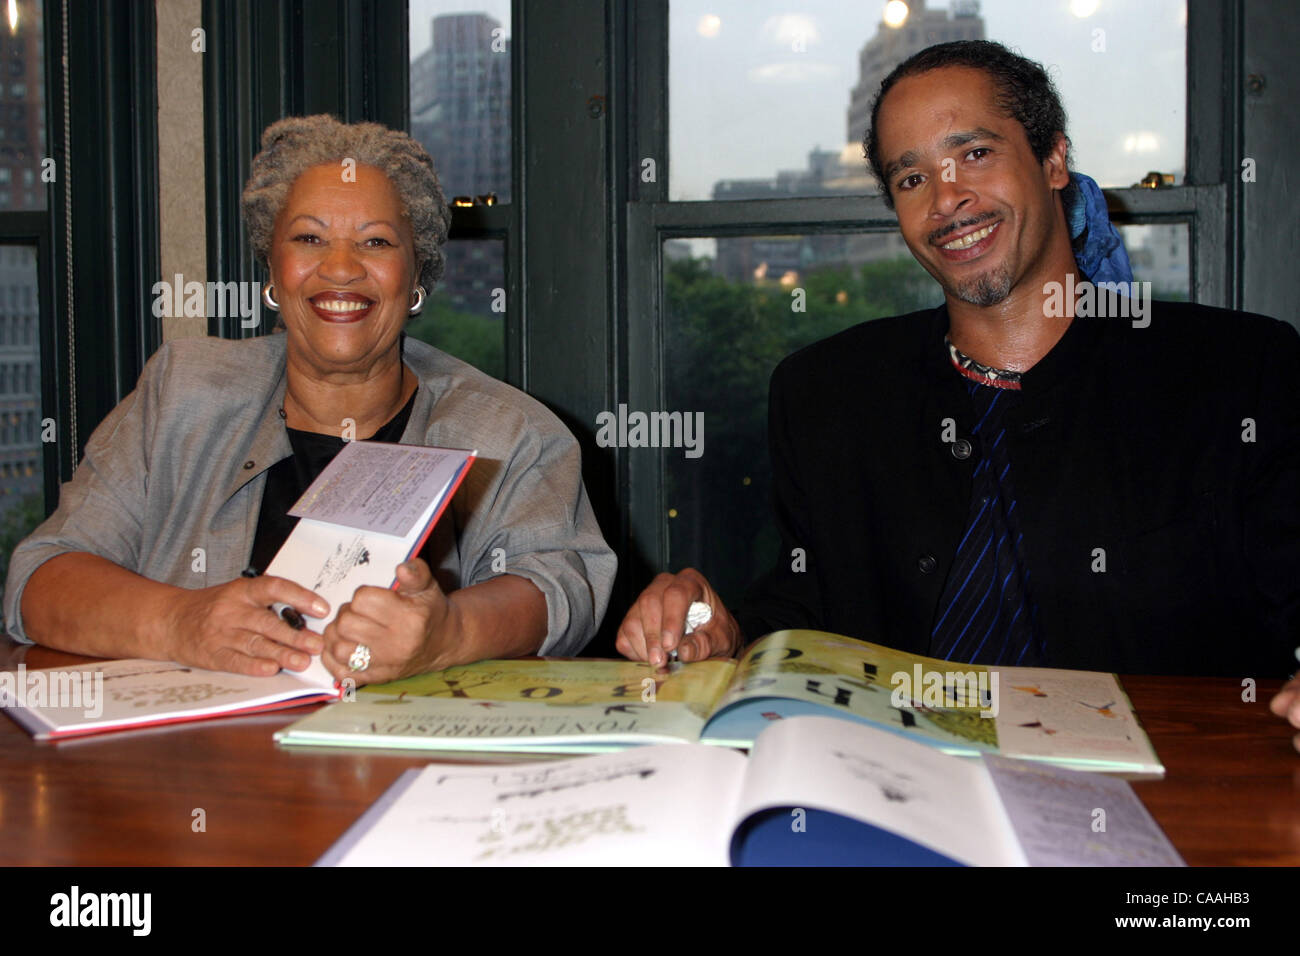 Jun 18, 2003; New York, NY, USA; TONI and SLADE MORRISON at the Who's Got Game? Book signing at Barnes and Noble Union Square on June 18, 2003. Stock Photo